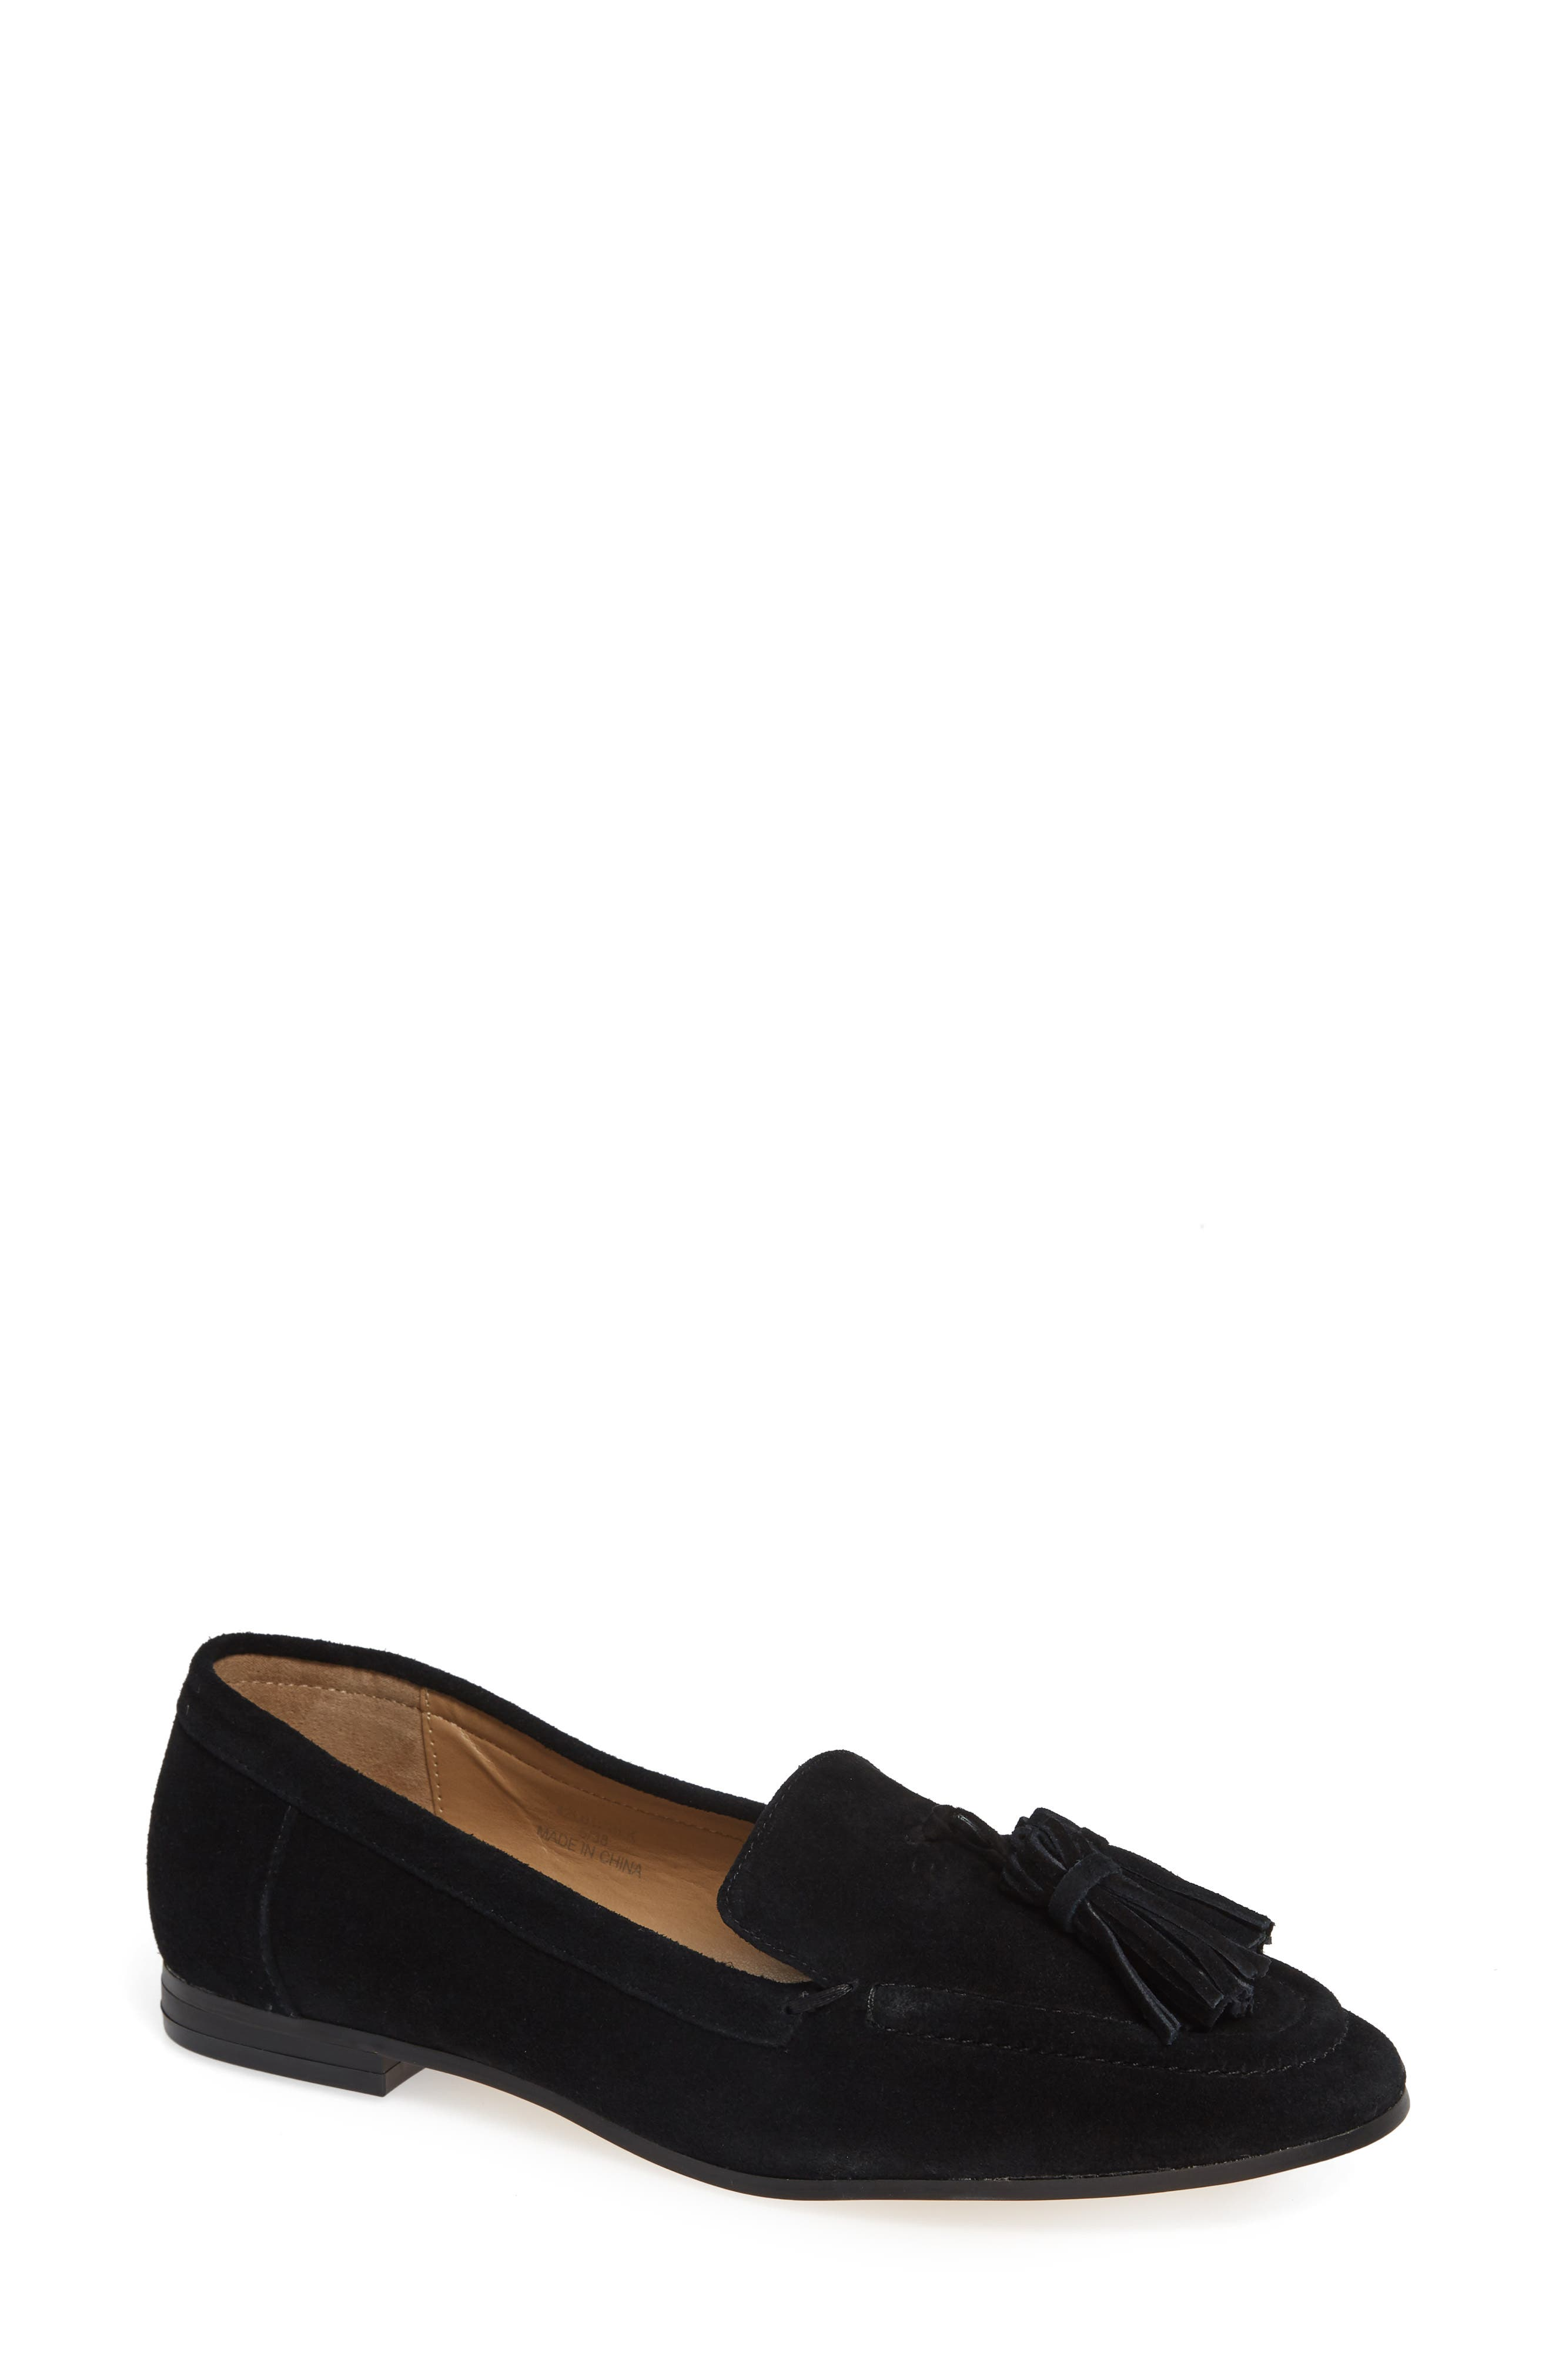 Lexi Loafer, Main, color, 001